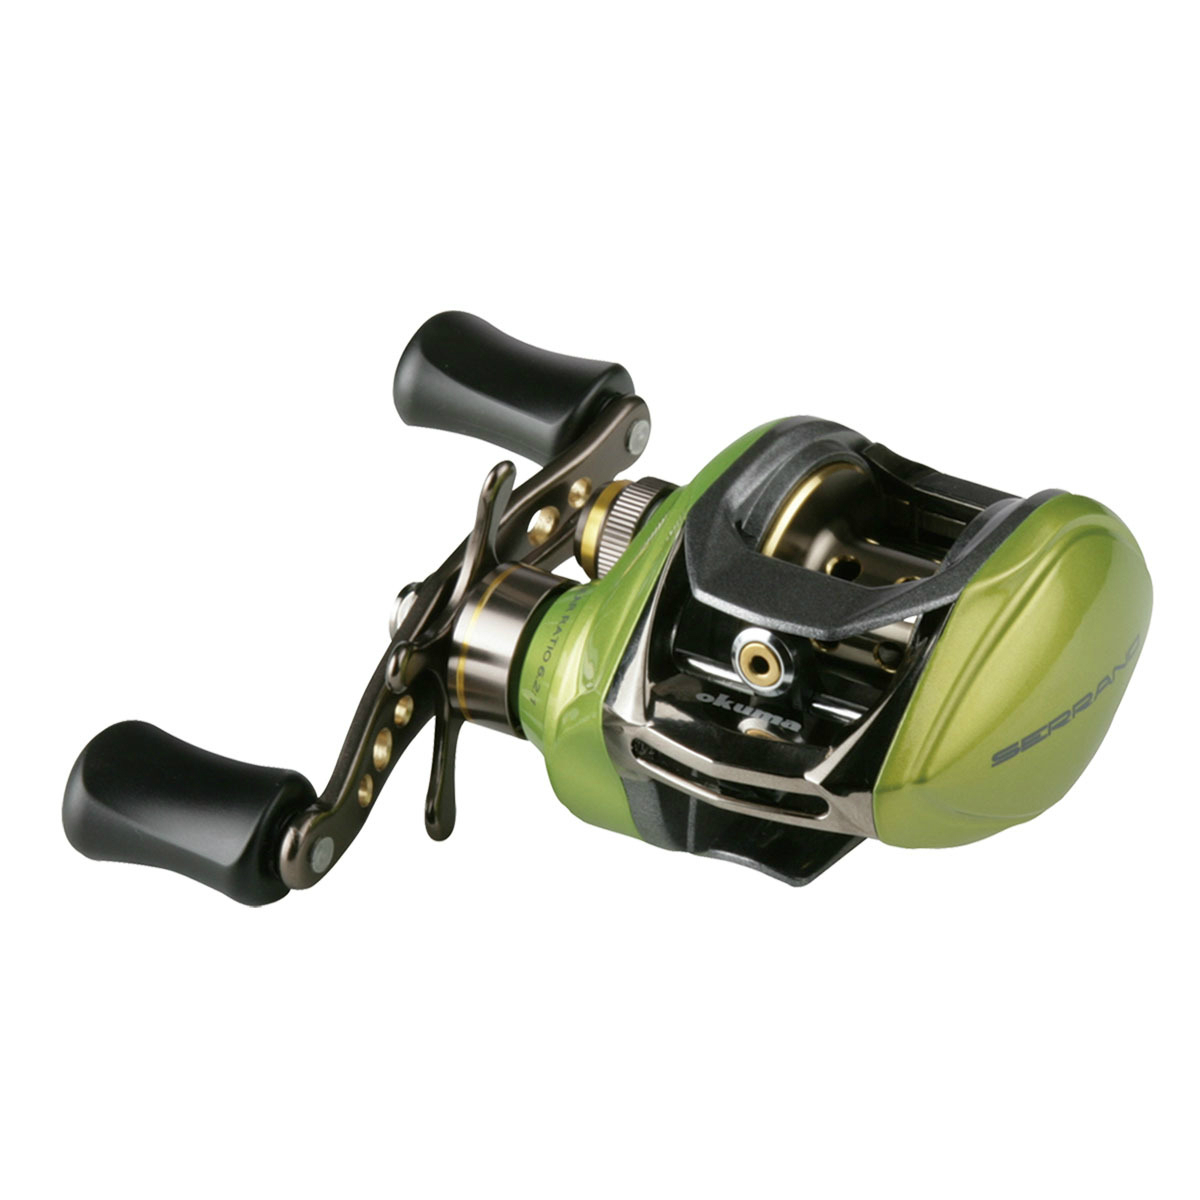 Okuma SR200II Fishing Gear Baitcasting Reel Deep/Shallow